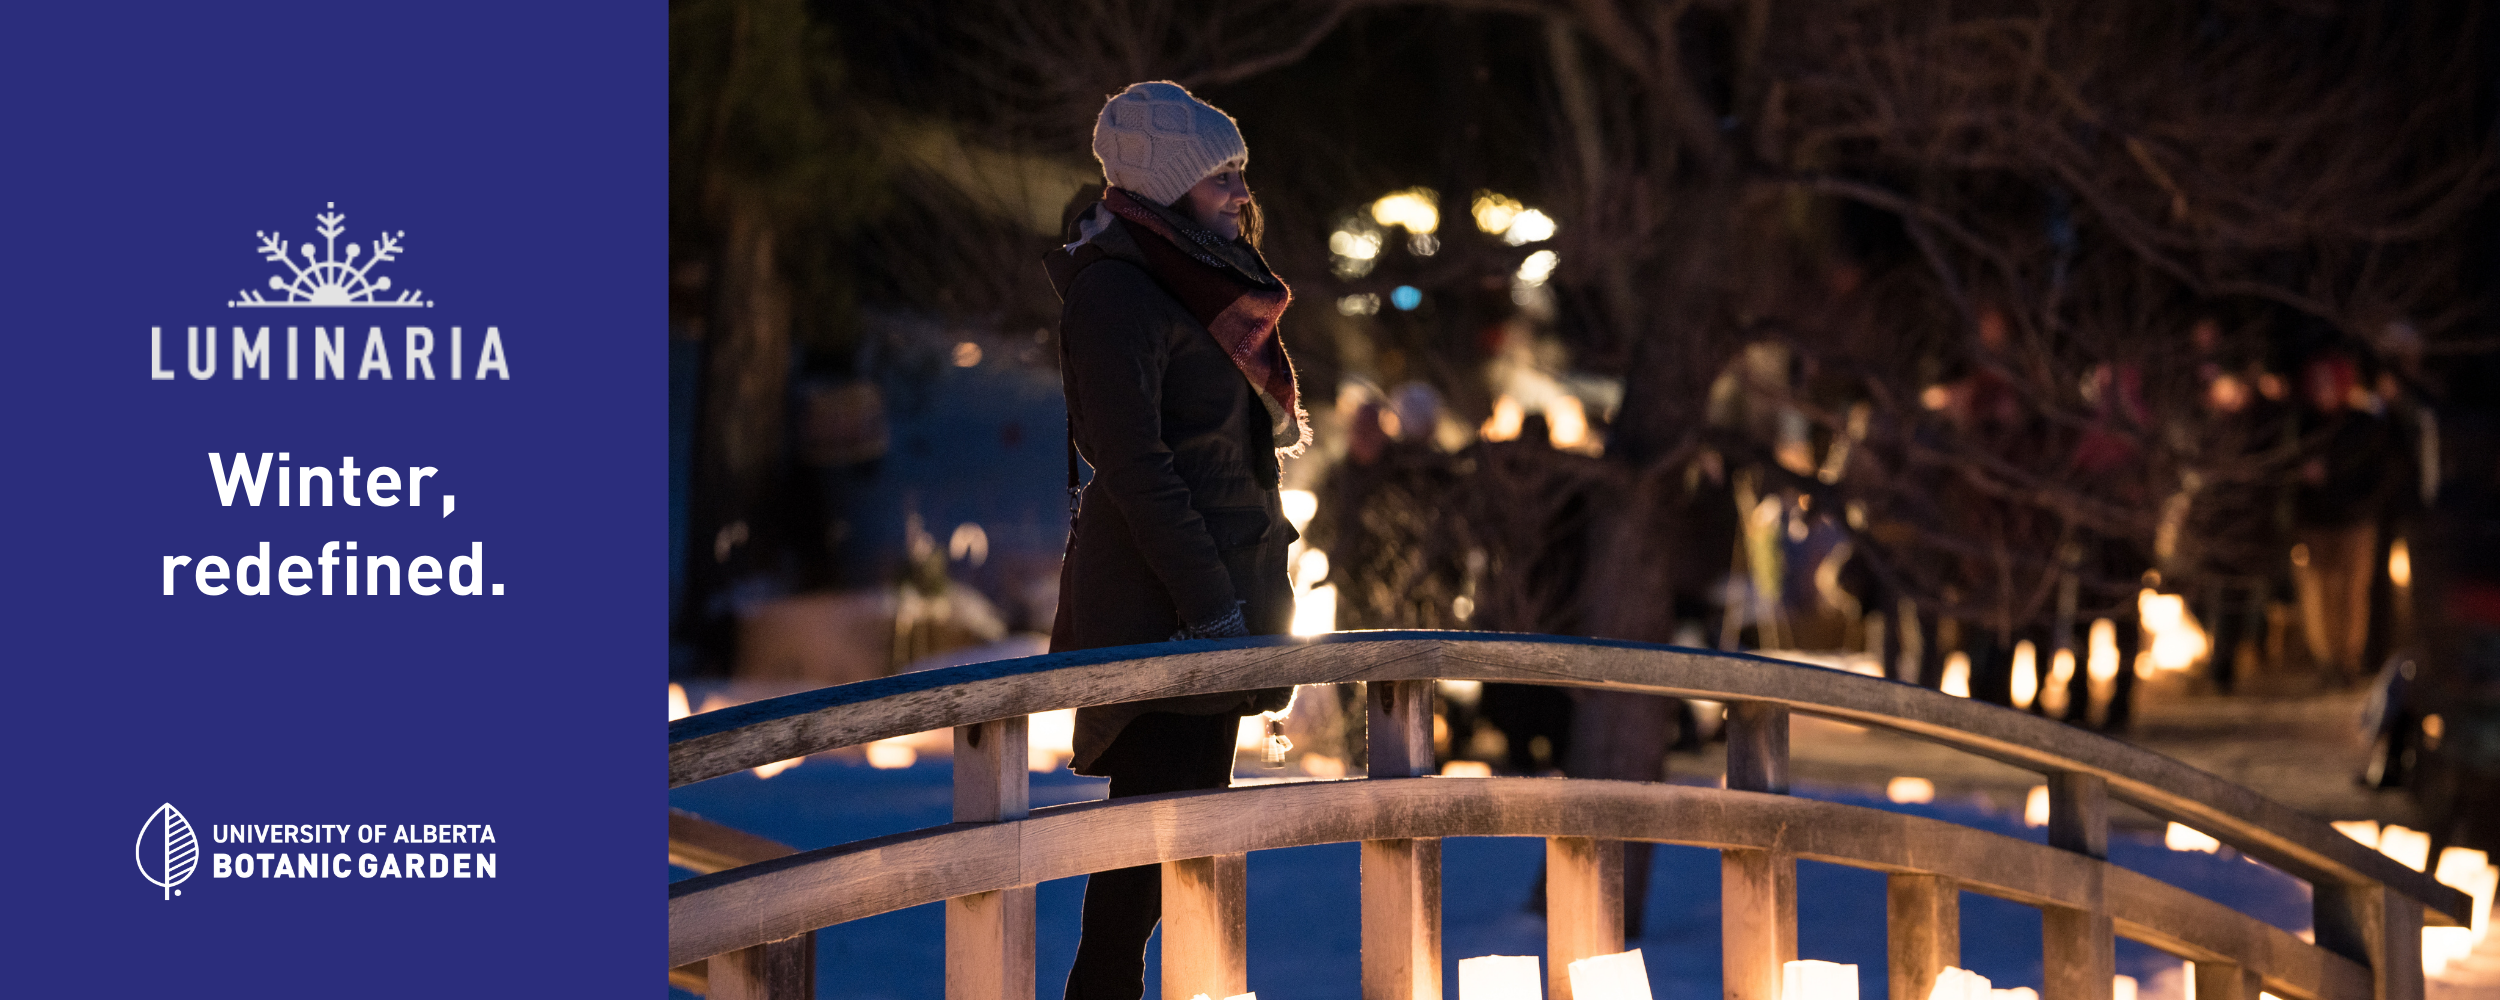 Luminaria girl on bridge